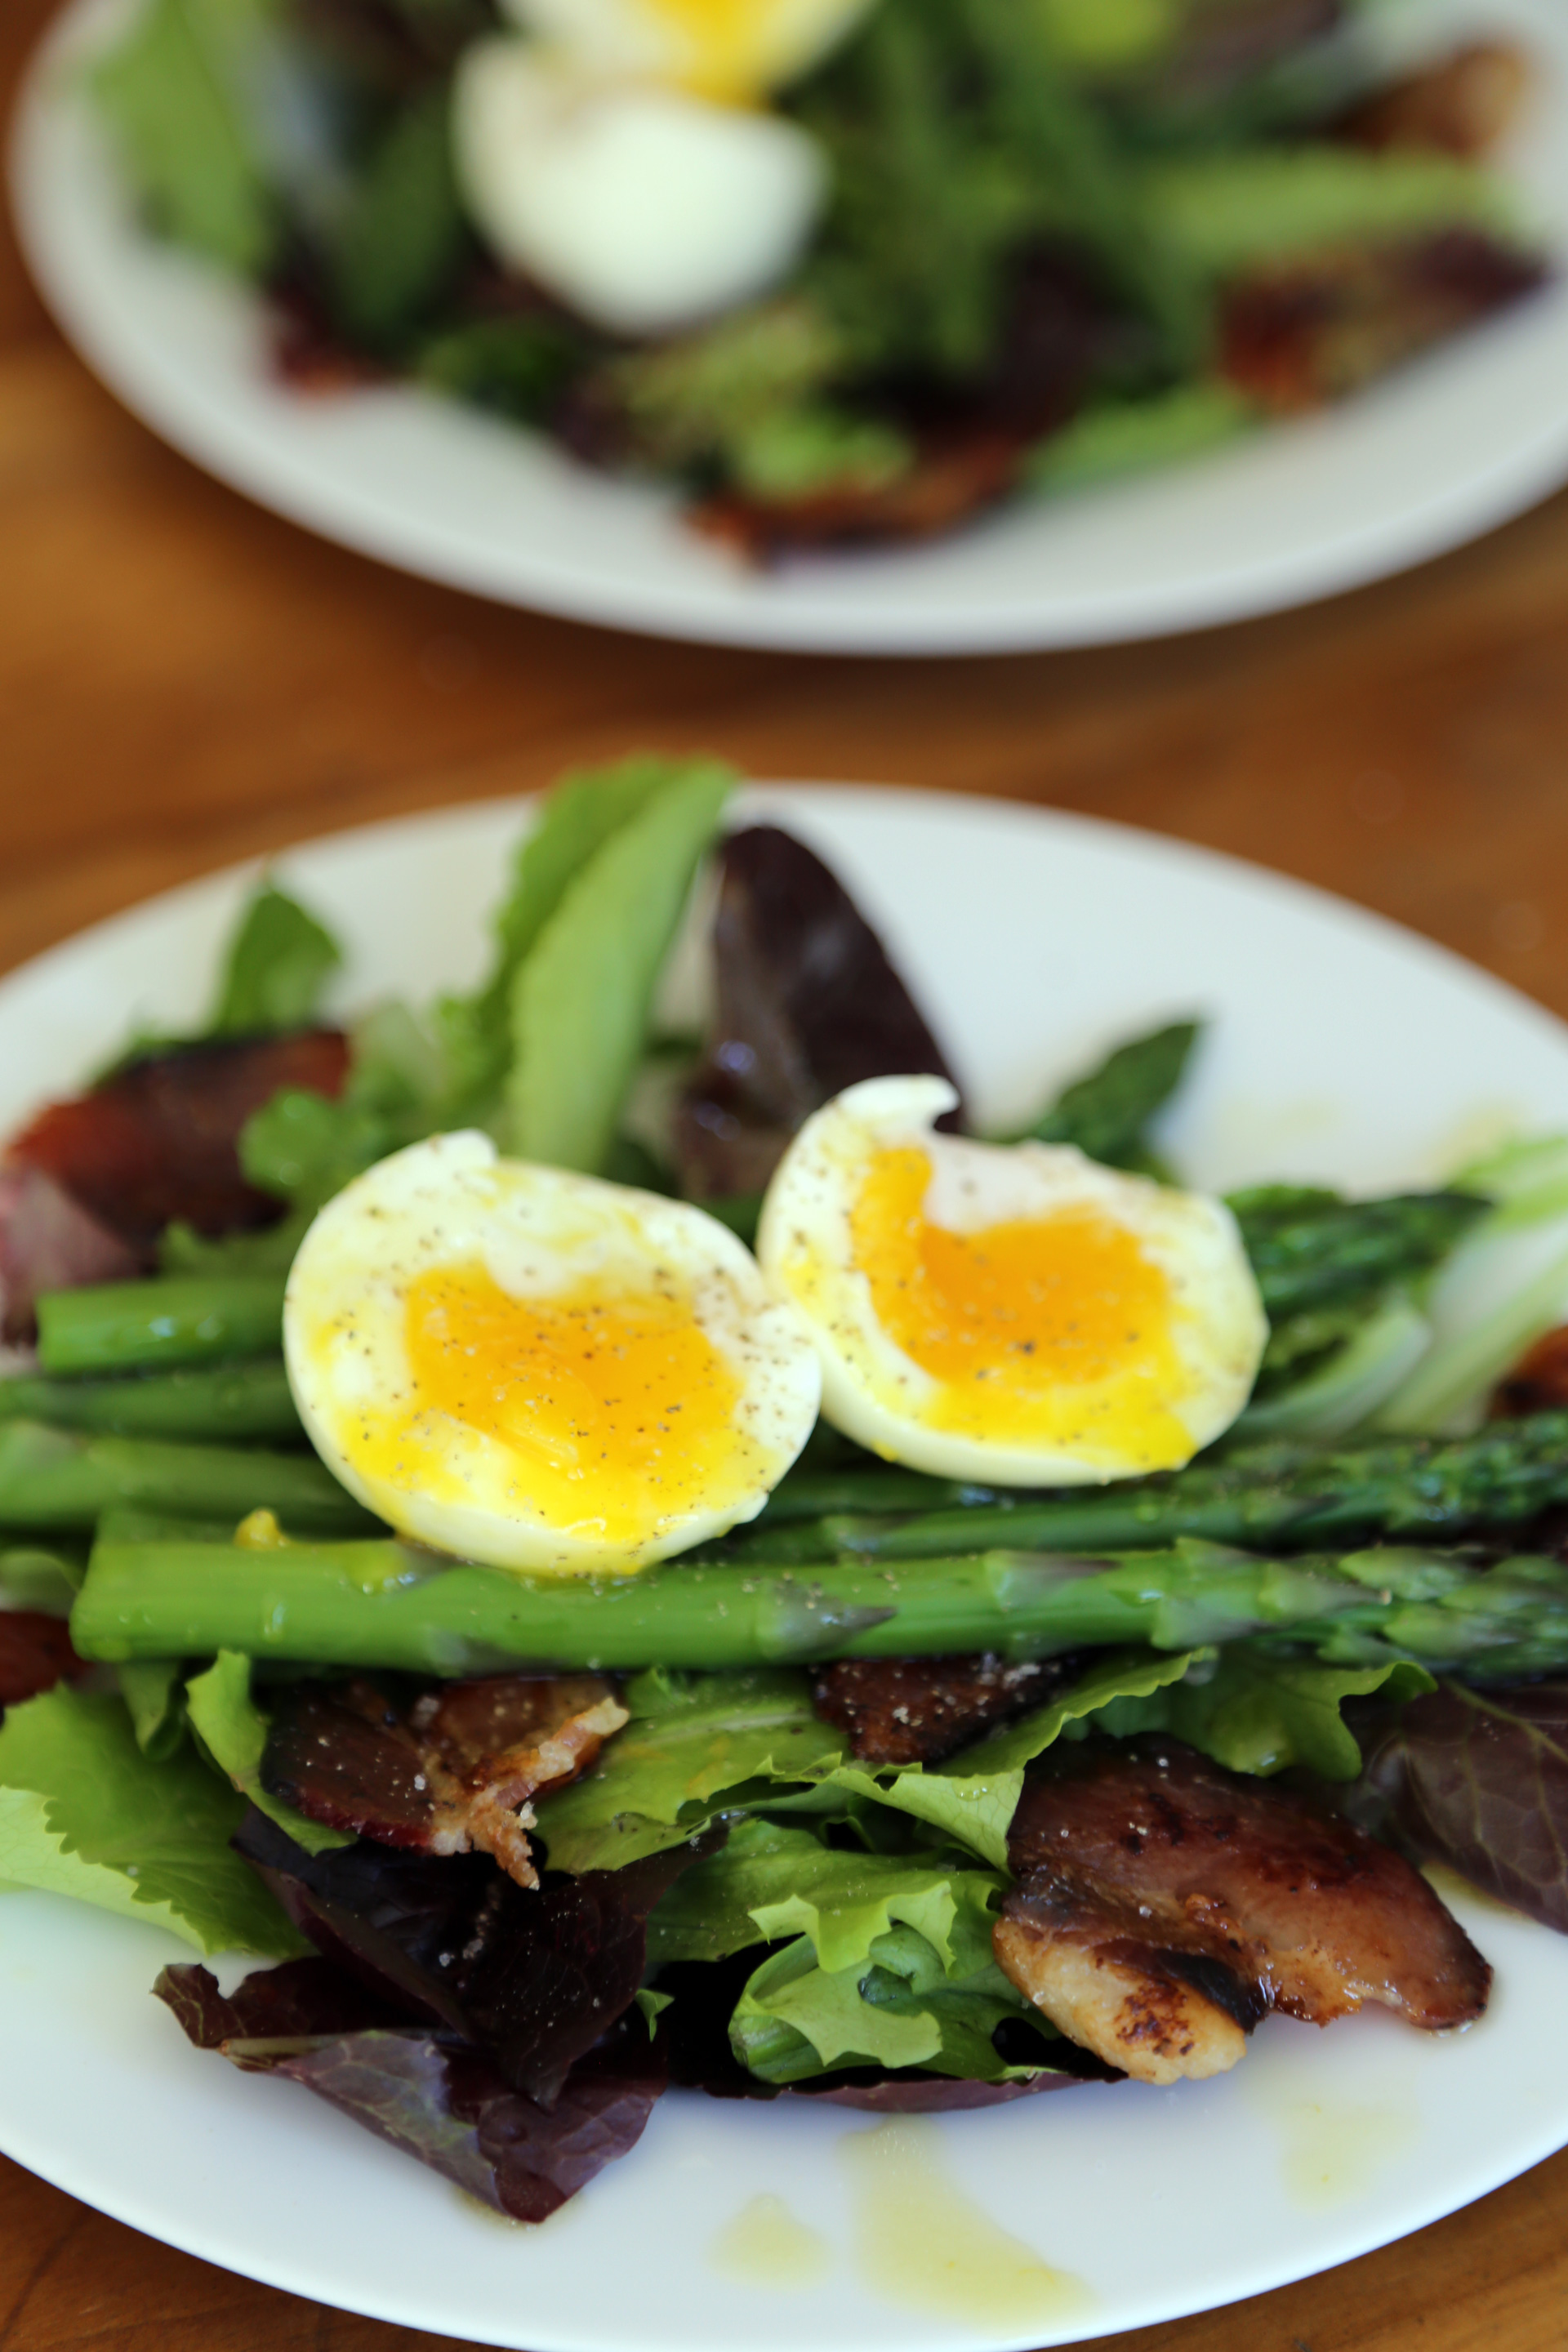 Mother's Day Breakfast Salad with Baby Greens, Soft Boiled Eggs, Asparagus, and Thick-Cut Bacon with Lemon-Pepper Vinaigrette